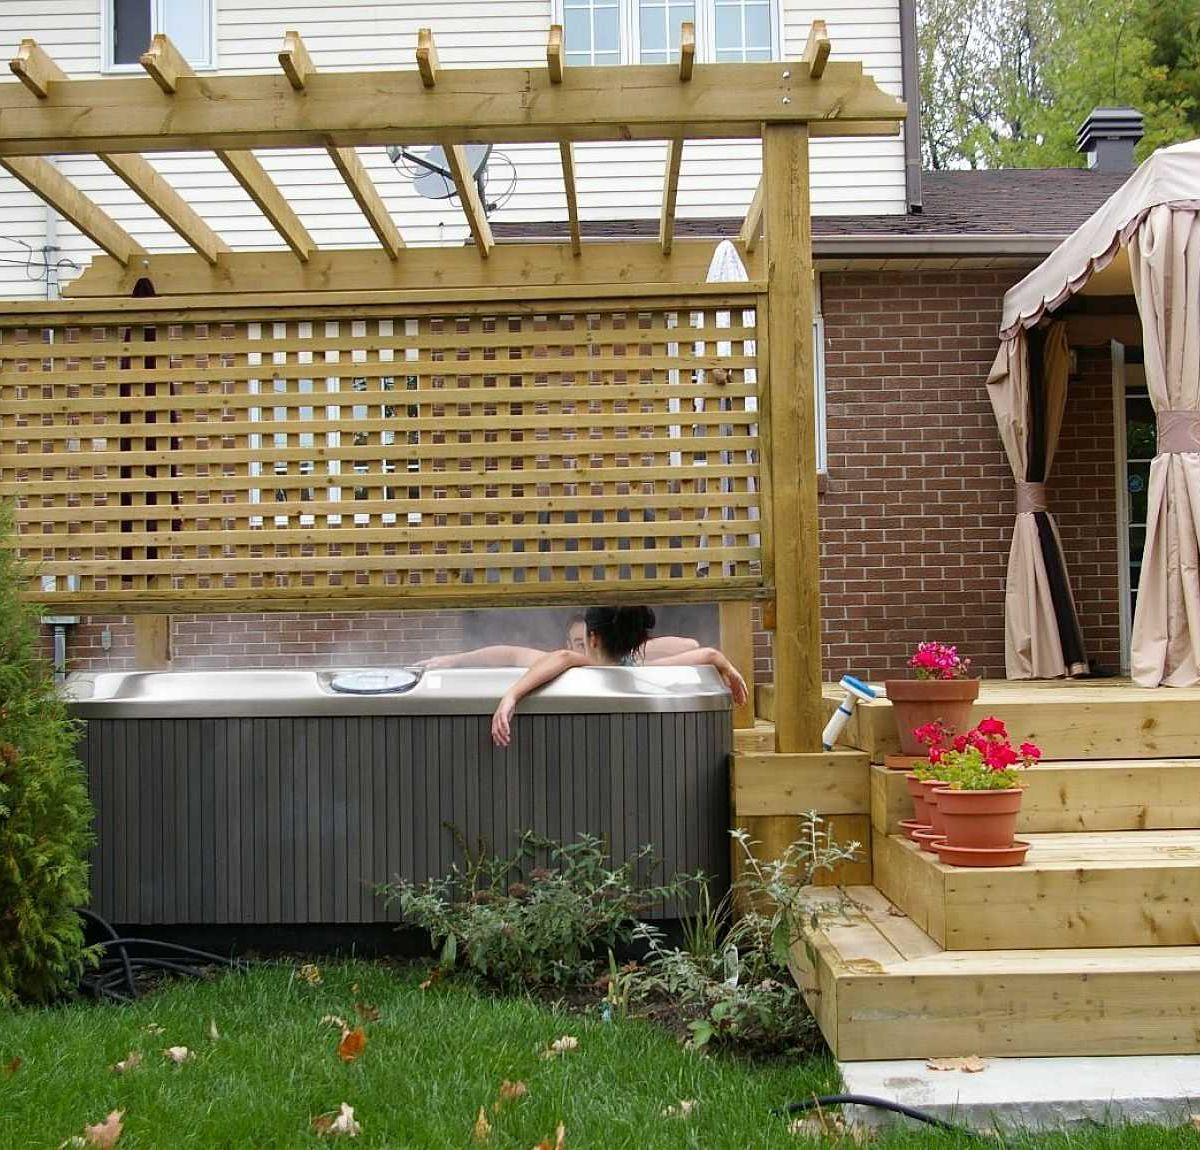 Privacy Fence Patio Backyard Ideas Fresh Decorative Wooden regarding The Most Amazing Privacy Screen Ideas for Backyard intended for Residence